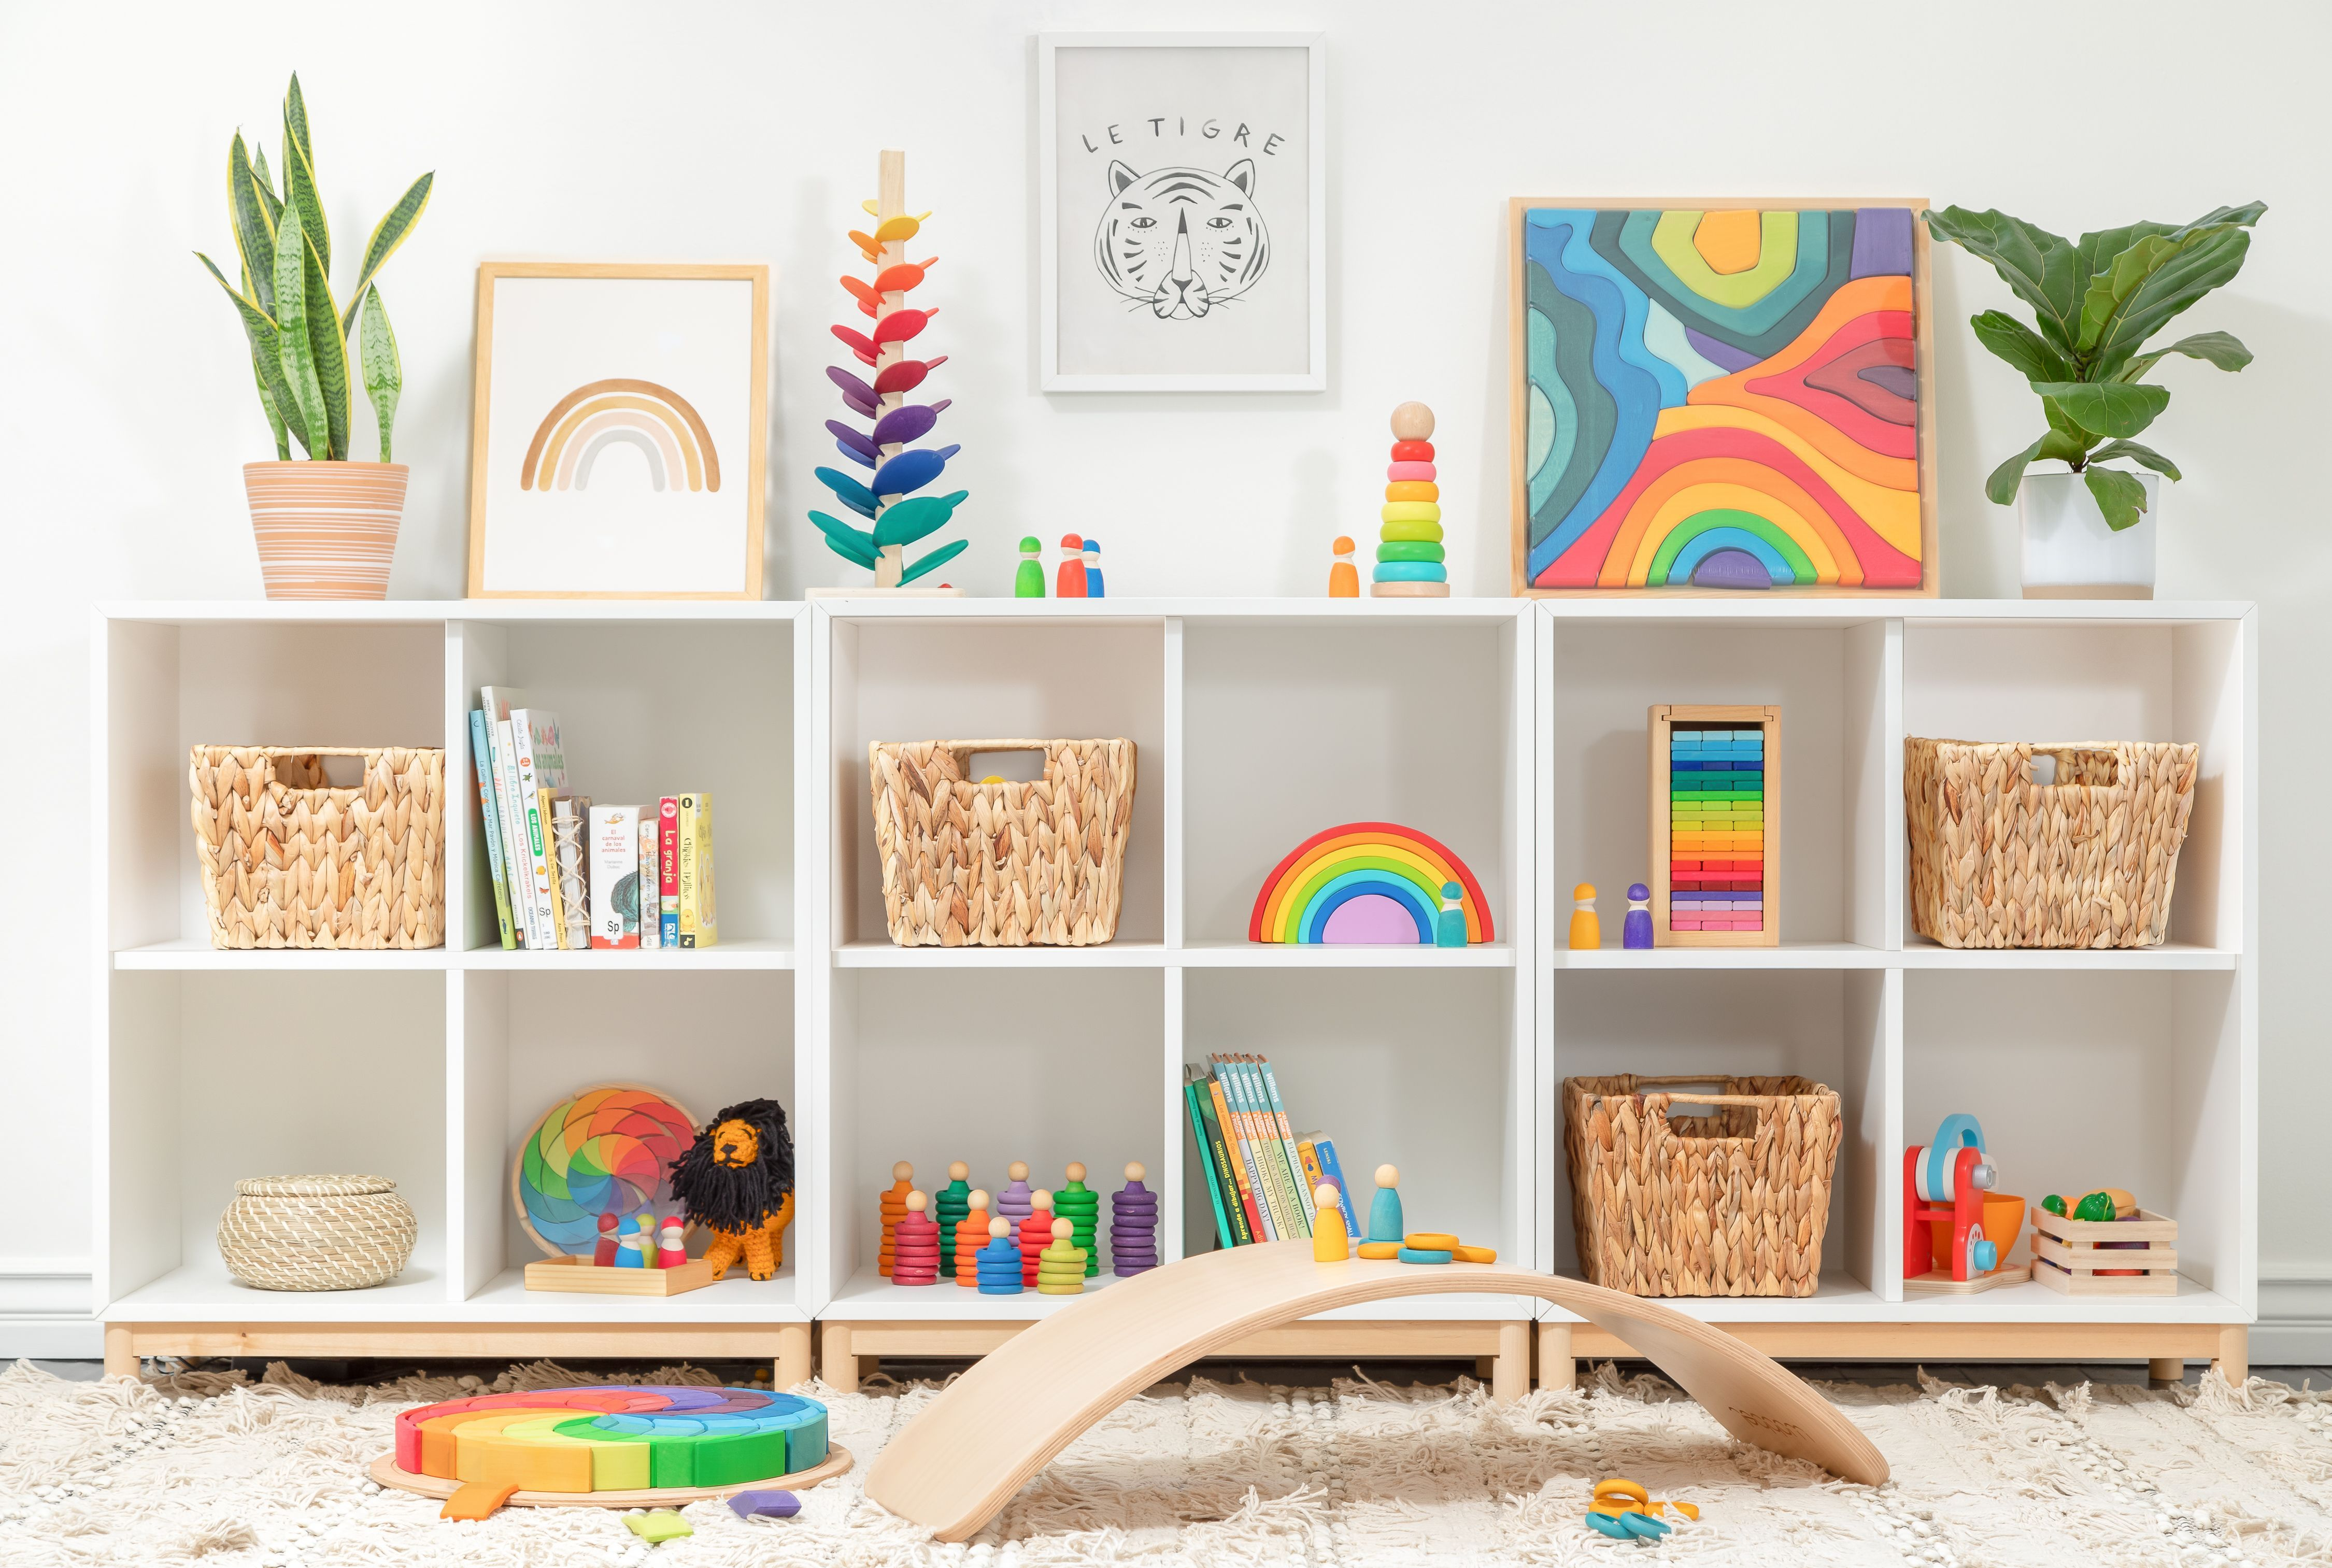 So excited to share the little play wall of wonderful wood toys we curated for a client in Sherman Oaks, CA. Home Preschool design project making use of Montessori inspired wood toys. @dillandolidesign #montessoristyle #preschooldesign #woodentoys #playroom #educational #grimm39s #grimmtoys #products #kidsproducts #luluandgeorgia #ikea #kidfriendly #rainbow